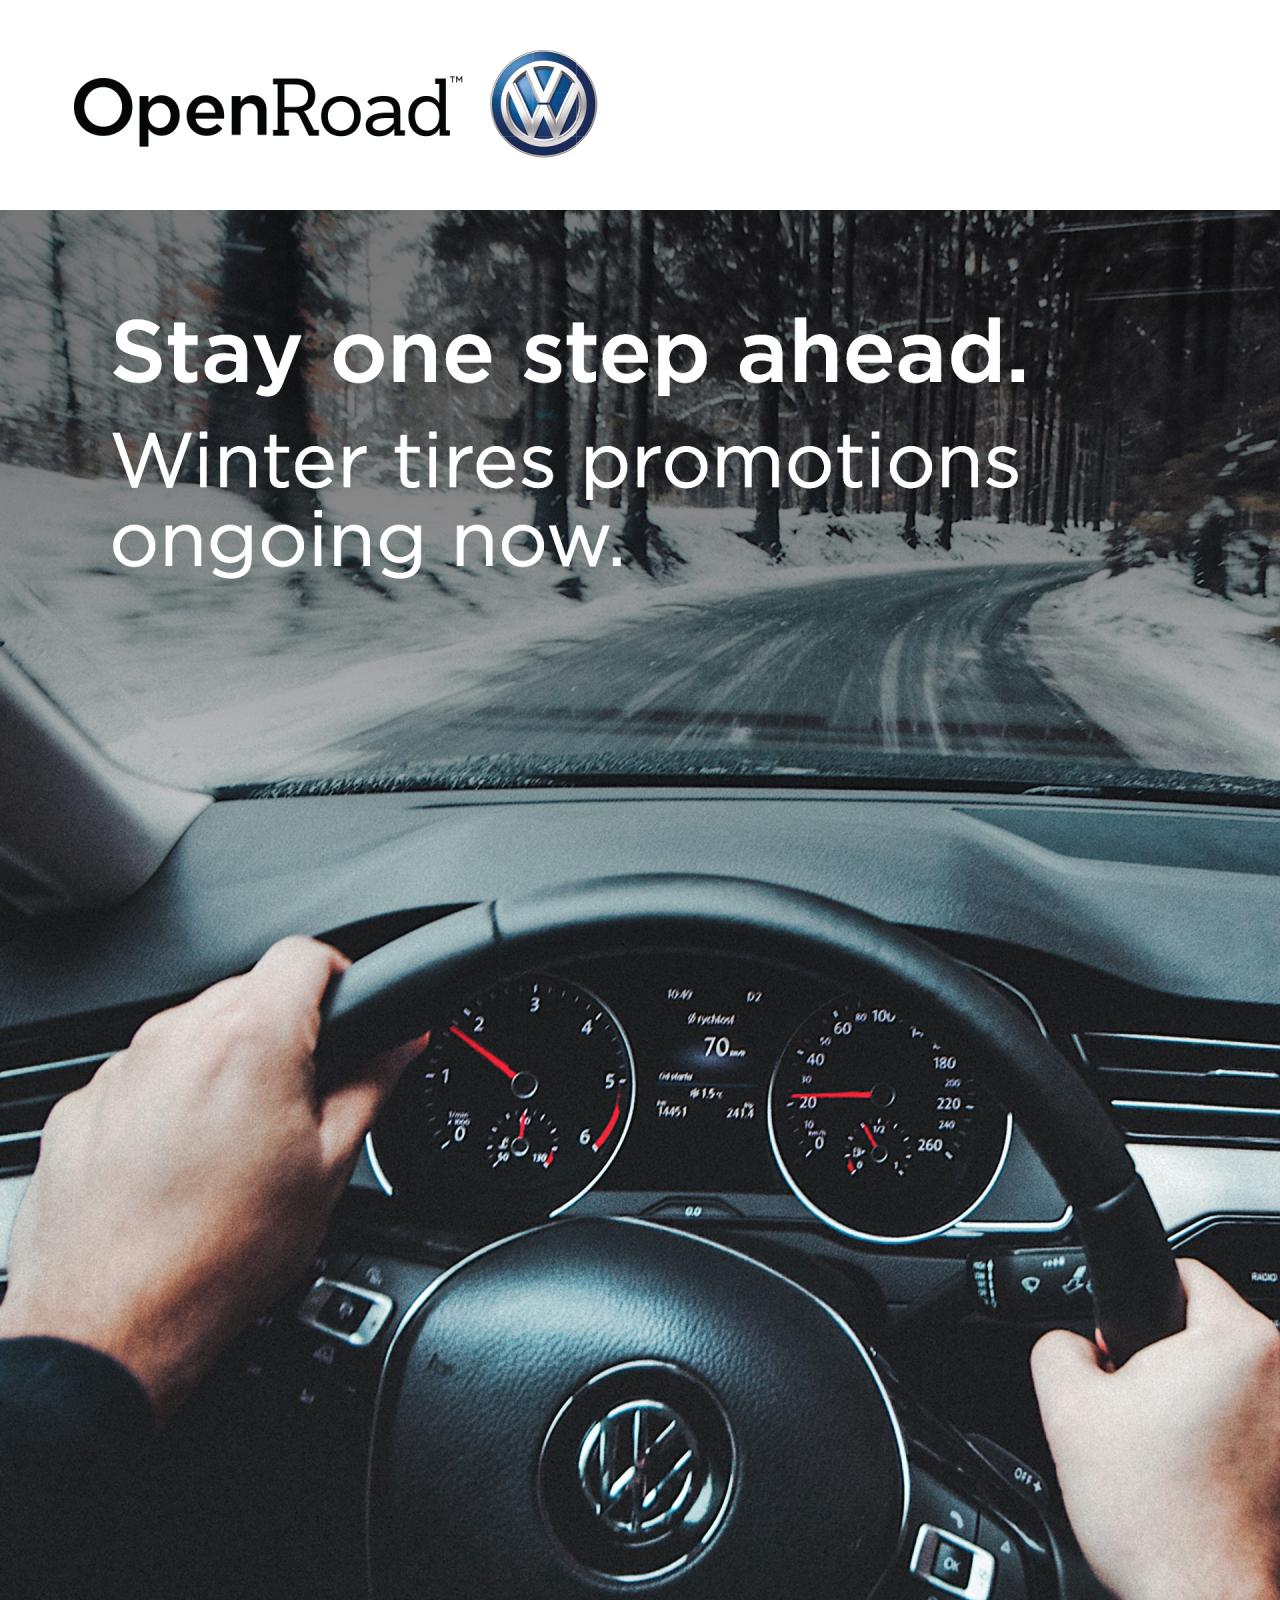 Seasonal Tire Offers at OpenRoad VW